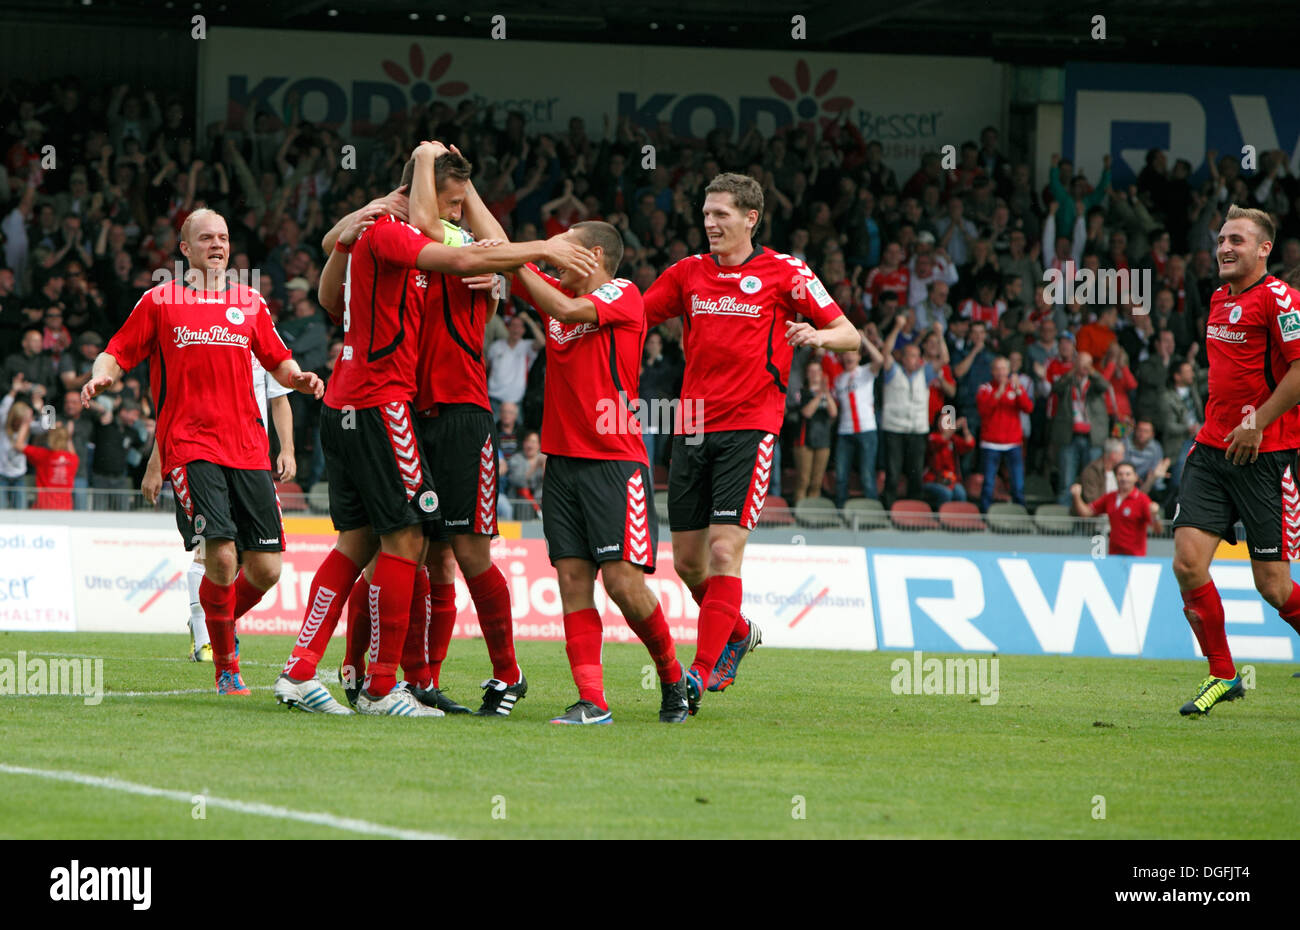 sports, football, Regional League West, 2013/2014, Rot Weiss Oberhausen versus Rot Weiss Essen 2:0, Stadium Niederrhein in Oberhausen, scene of the match, RWO goal celebration after the 2:0 goal by Daniel Jansen - Stock Image